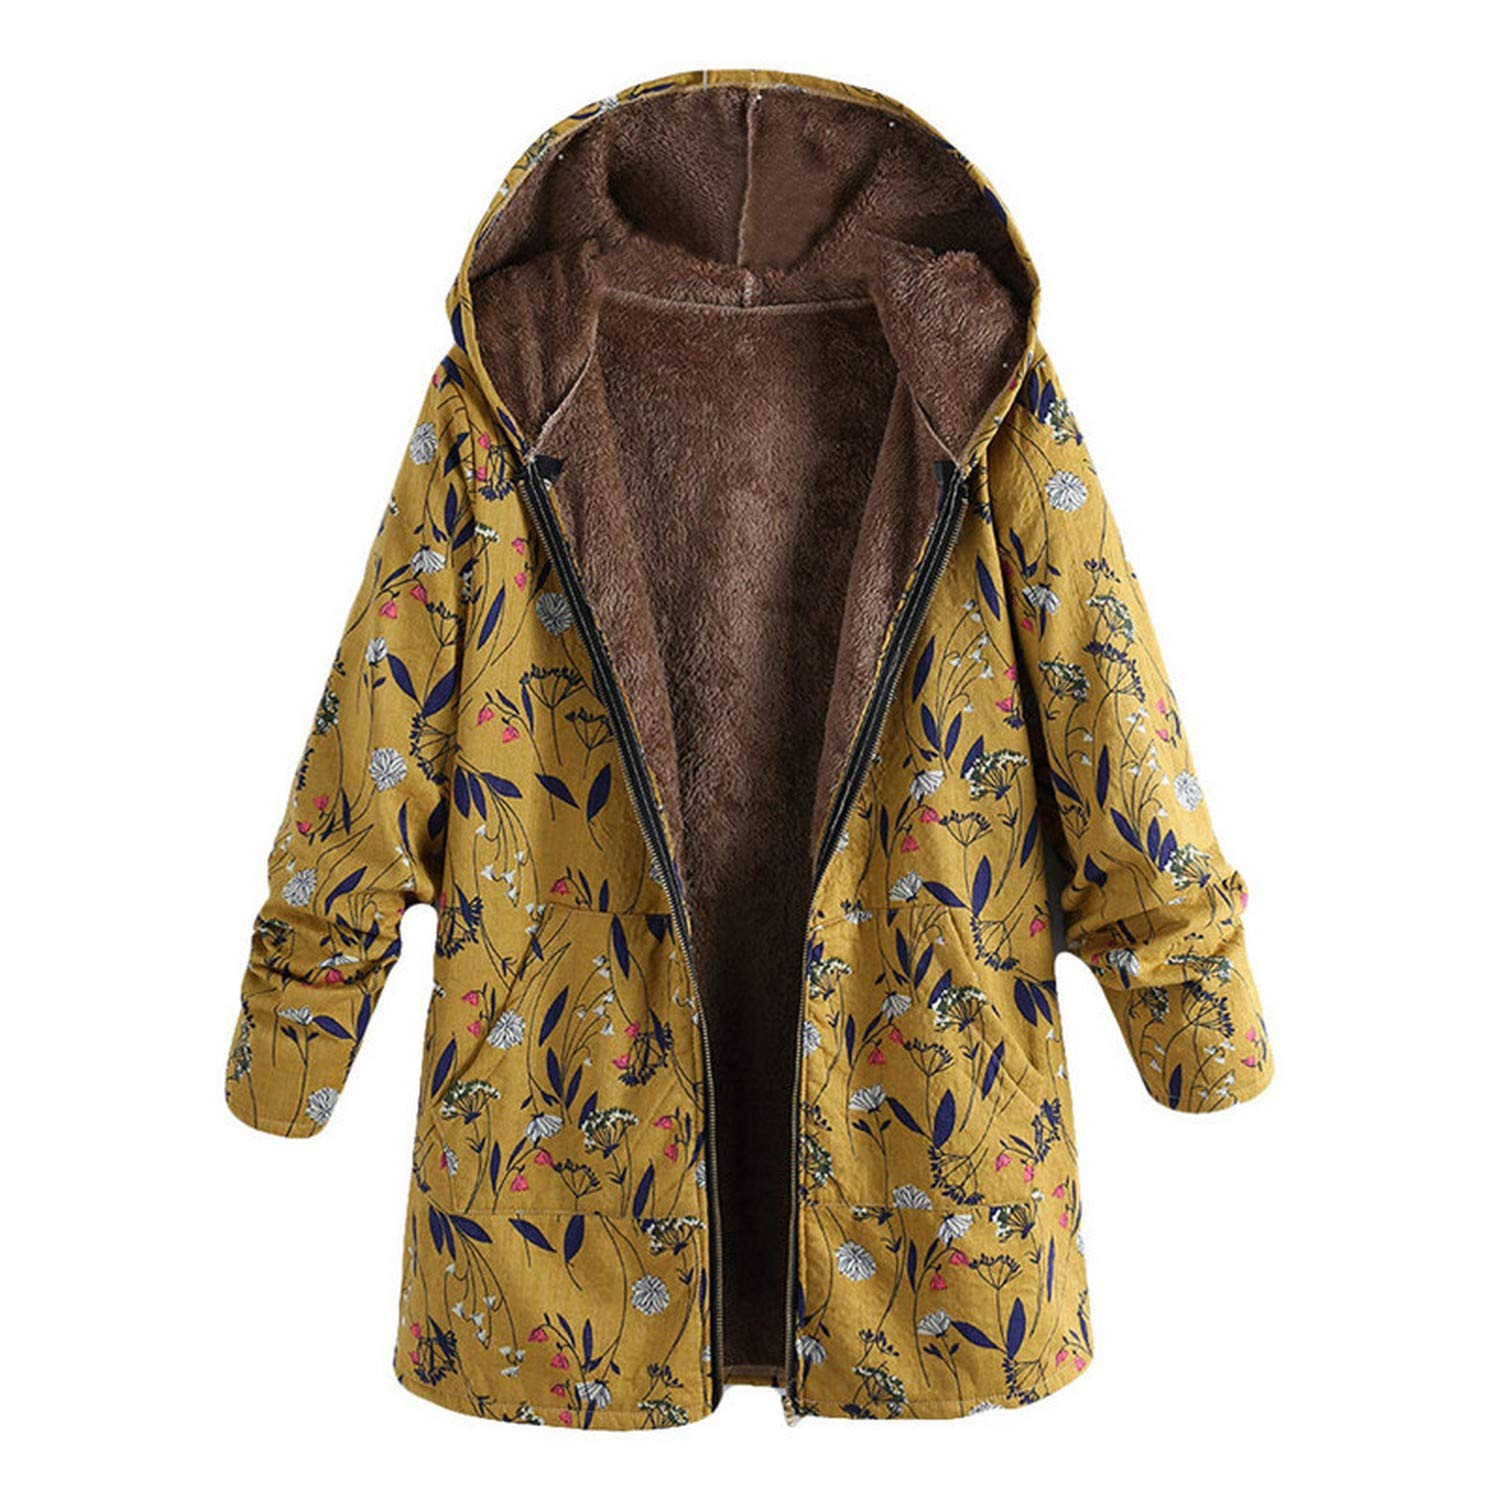 Amazon.com: Keasmto Winter Warm Wool Blends Hooded Coat Chaqueta Mujer JaquetaFloral Outerwear: Clothing